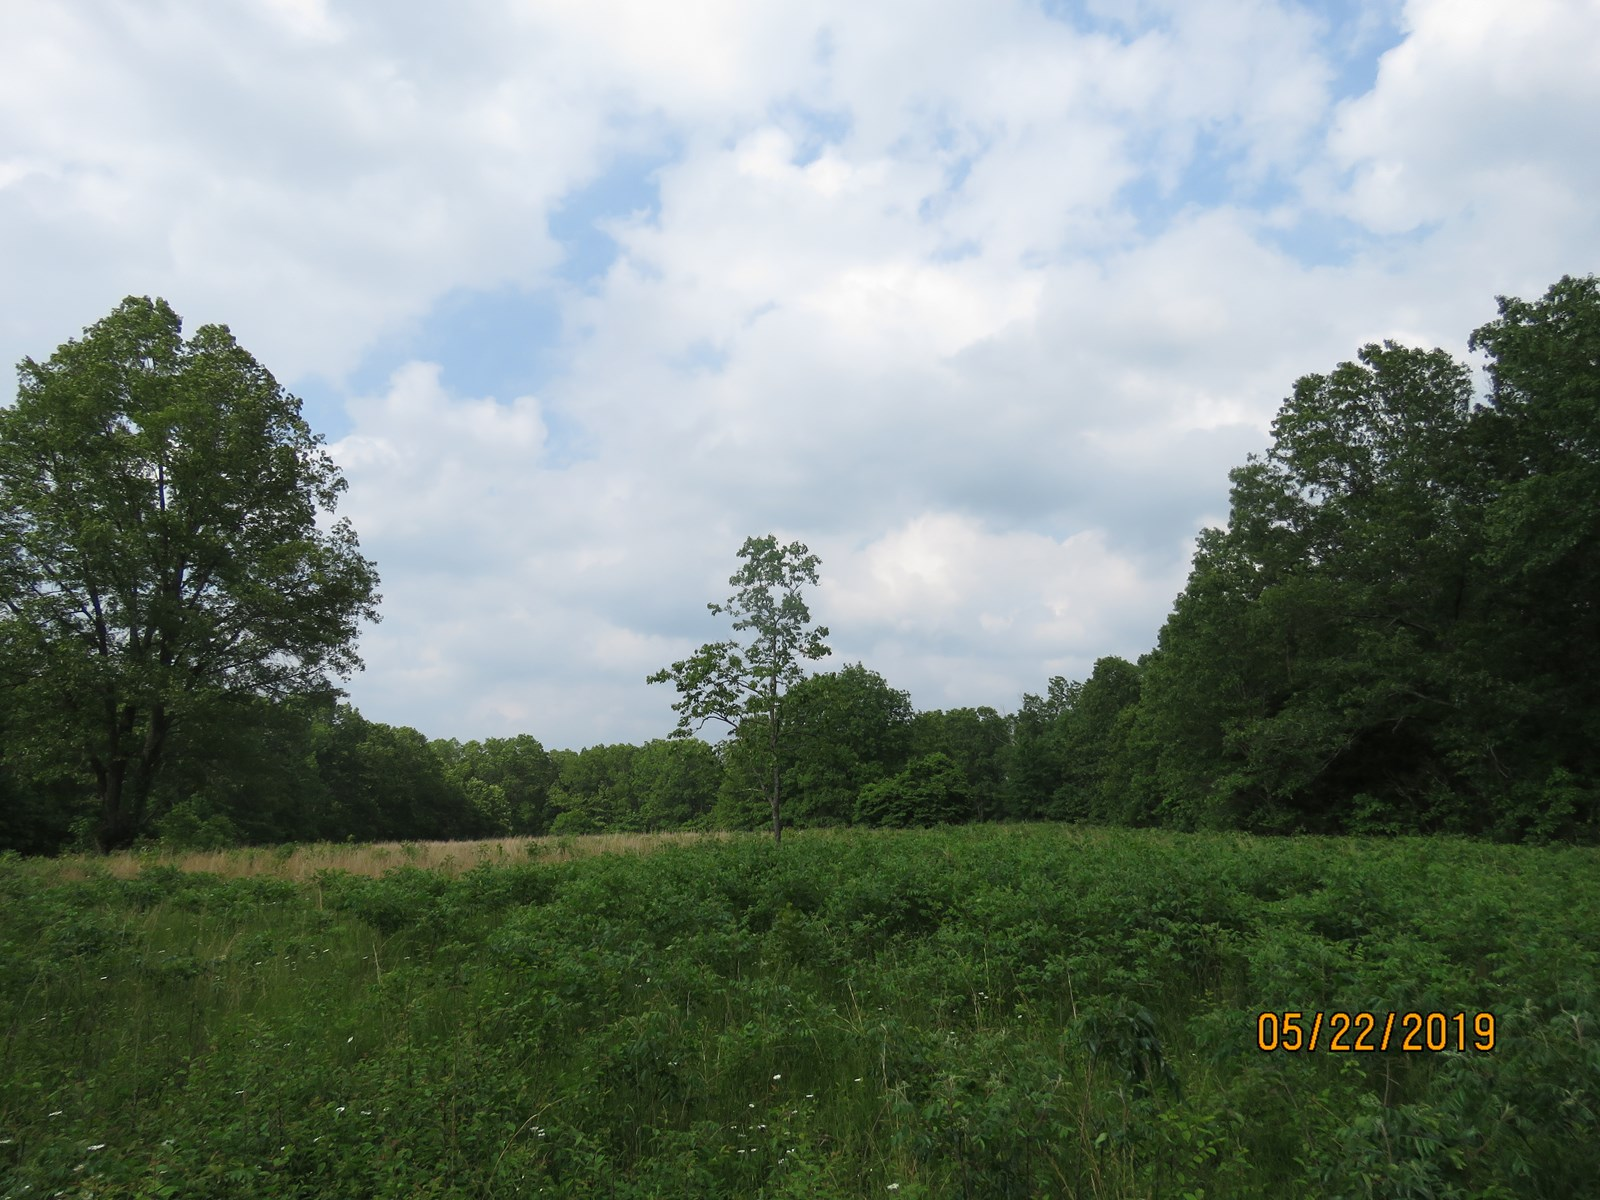 Land for sale in Douglas county